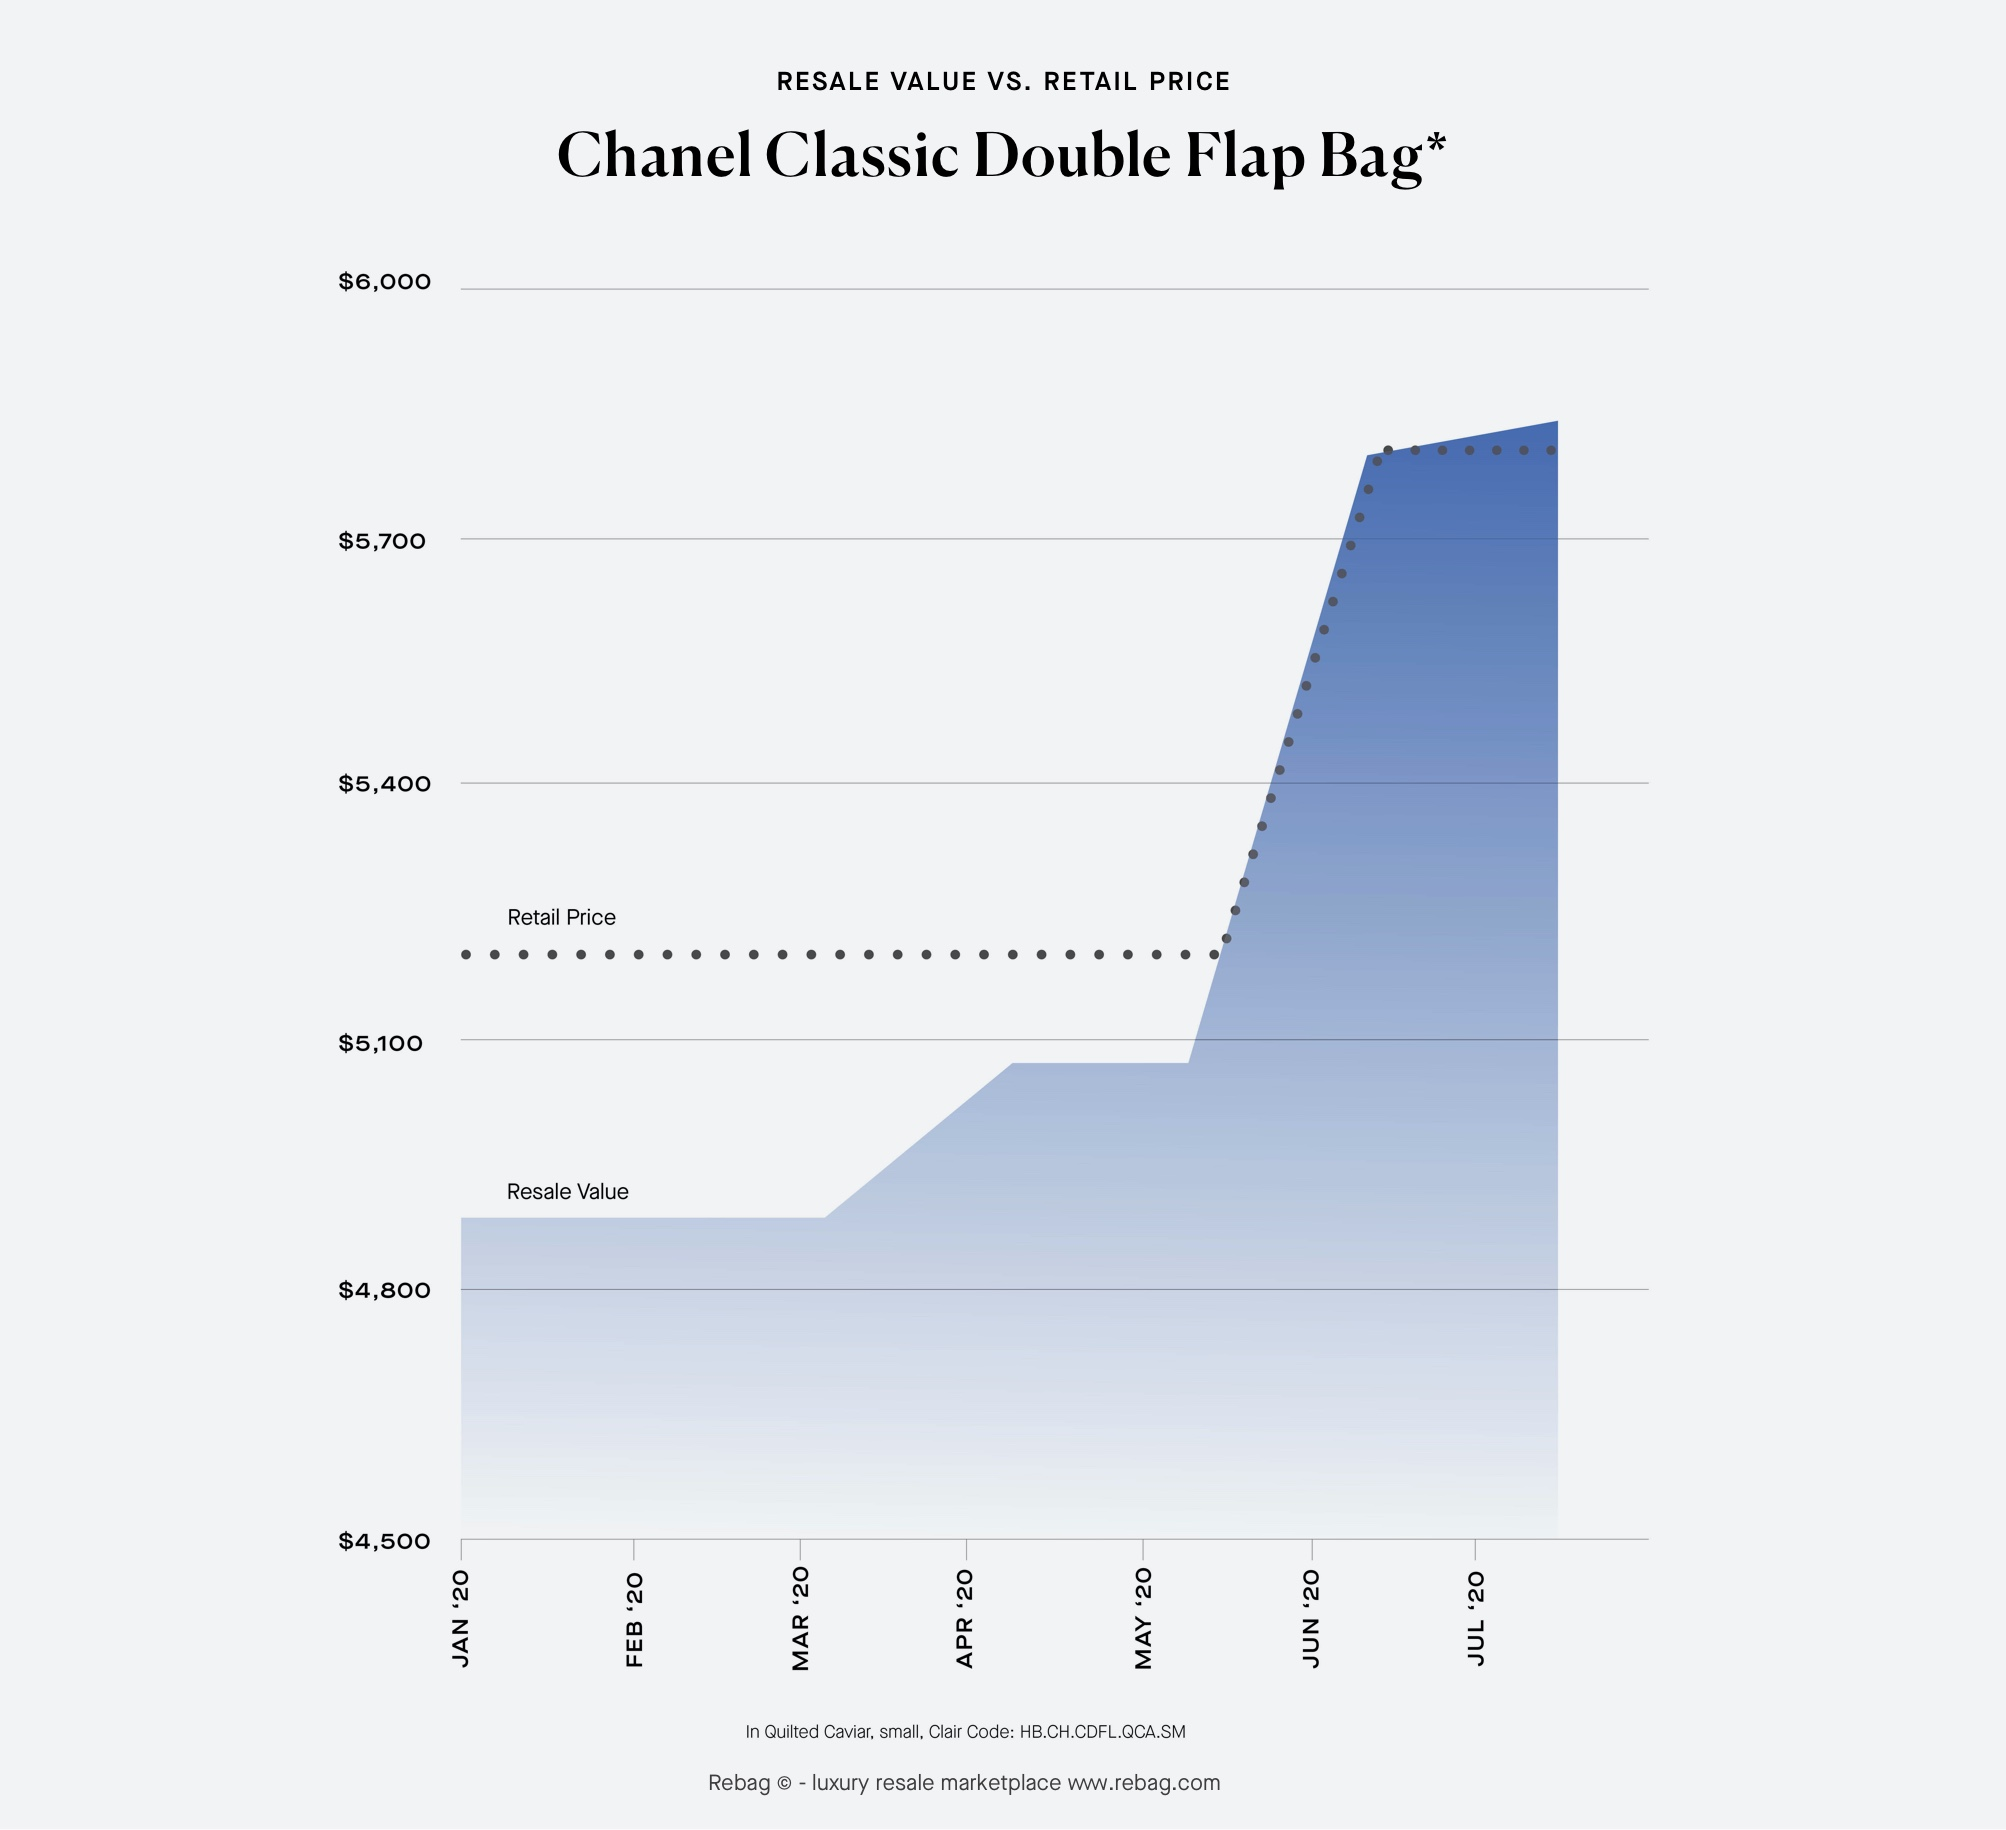 Chanel Classic Double Flap Resale Value and Retail Price evolution